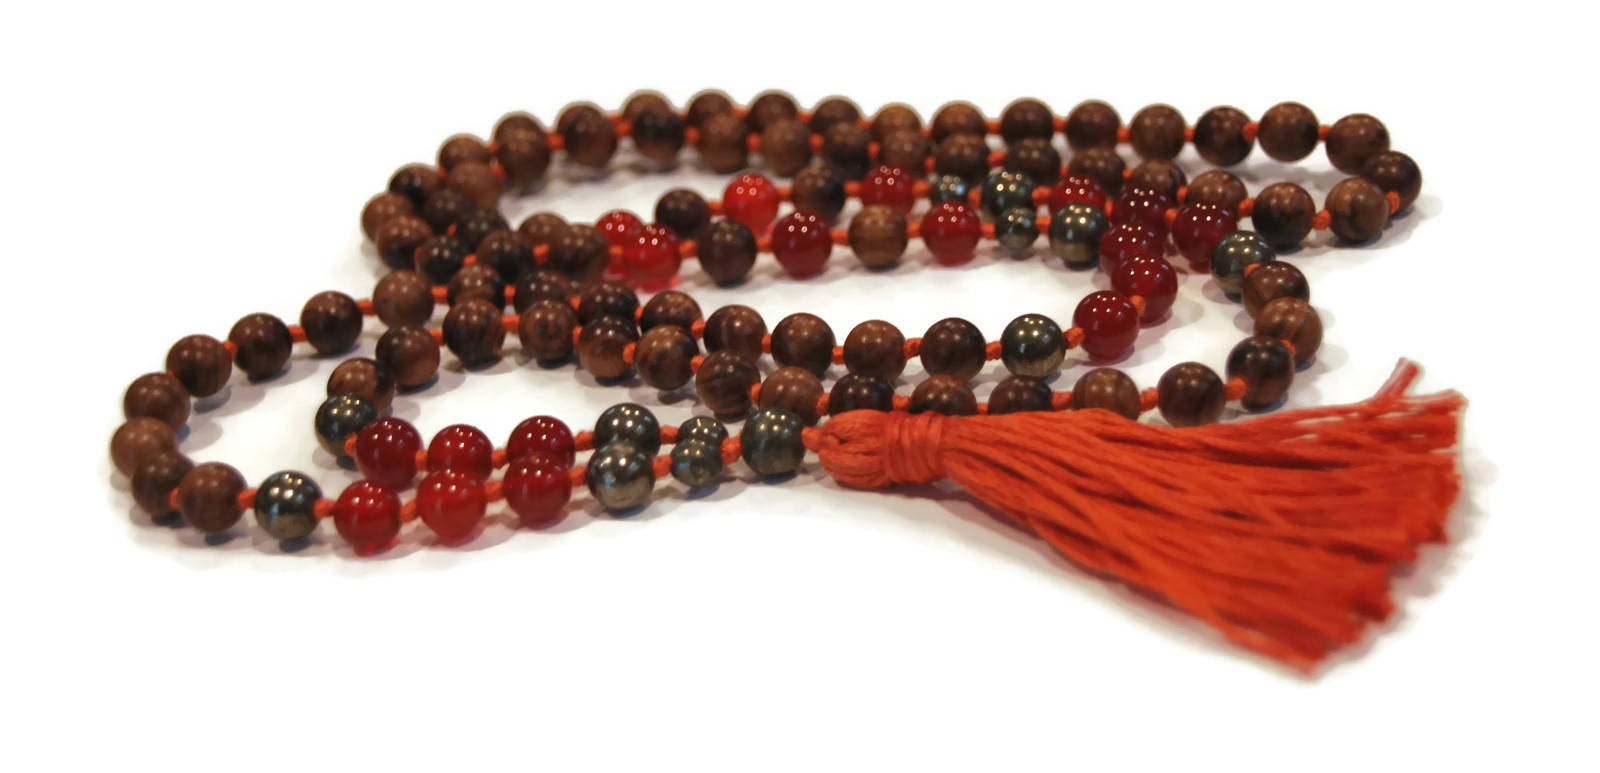 Eco Collection 8mm Pear Wood Carnelian Pyrite Traditional Cotton Knotted 108 Meditation Mala Necklace Chakra Yoga Modern Organic Jewelry